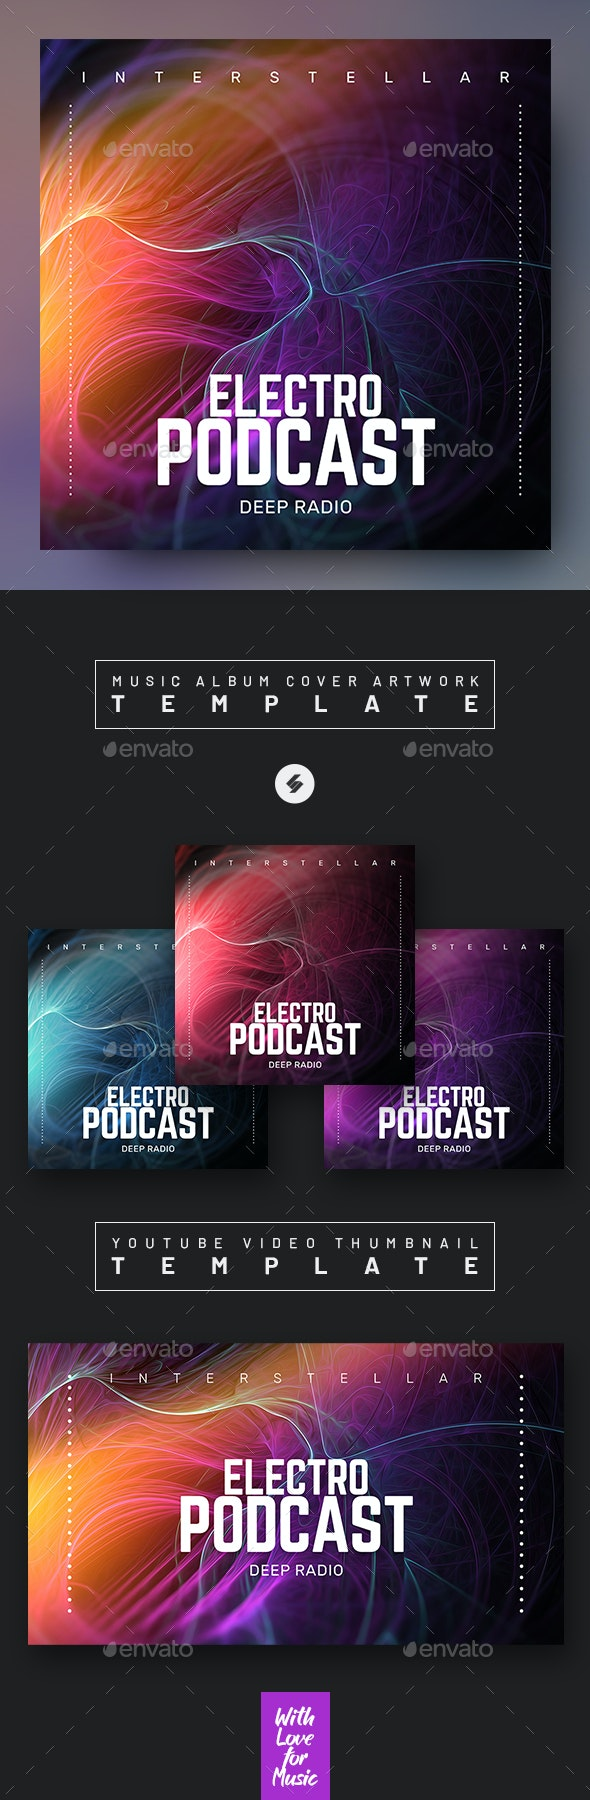 Electro Music Podcast Cover Artwork / Video Thumbnail Template - Miscellaneous Social Media